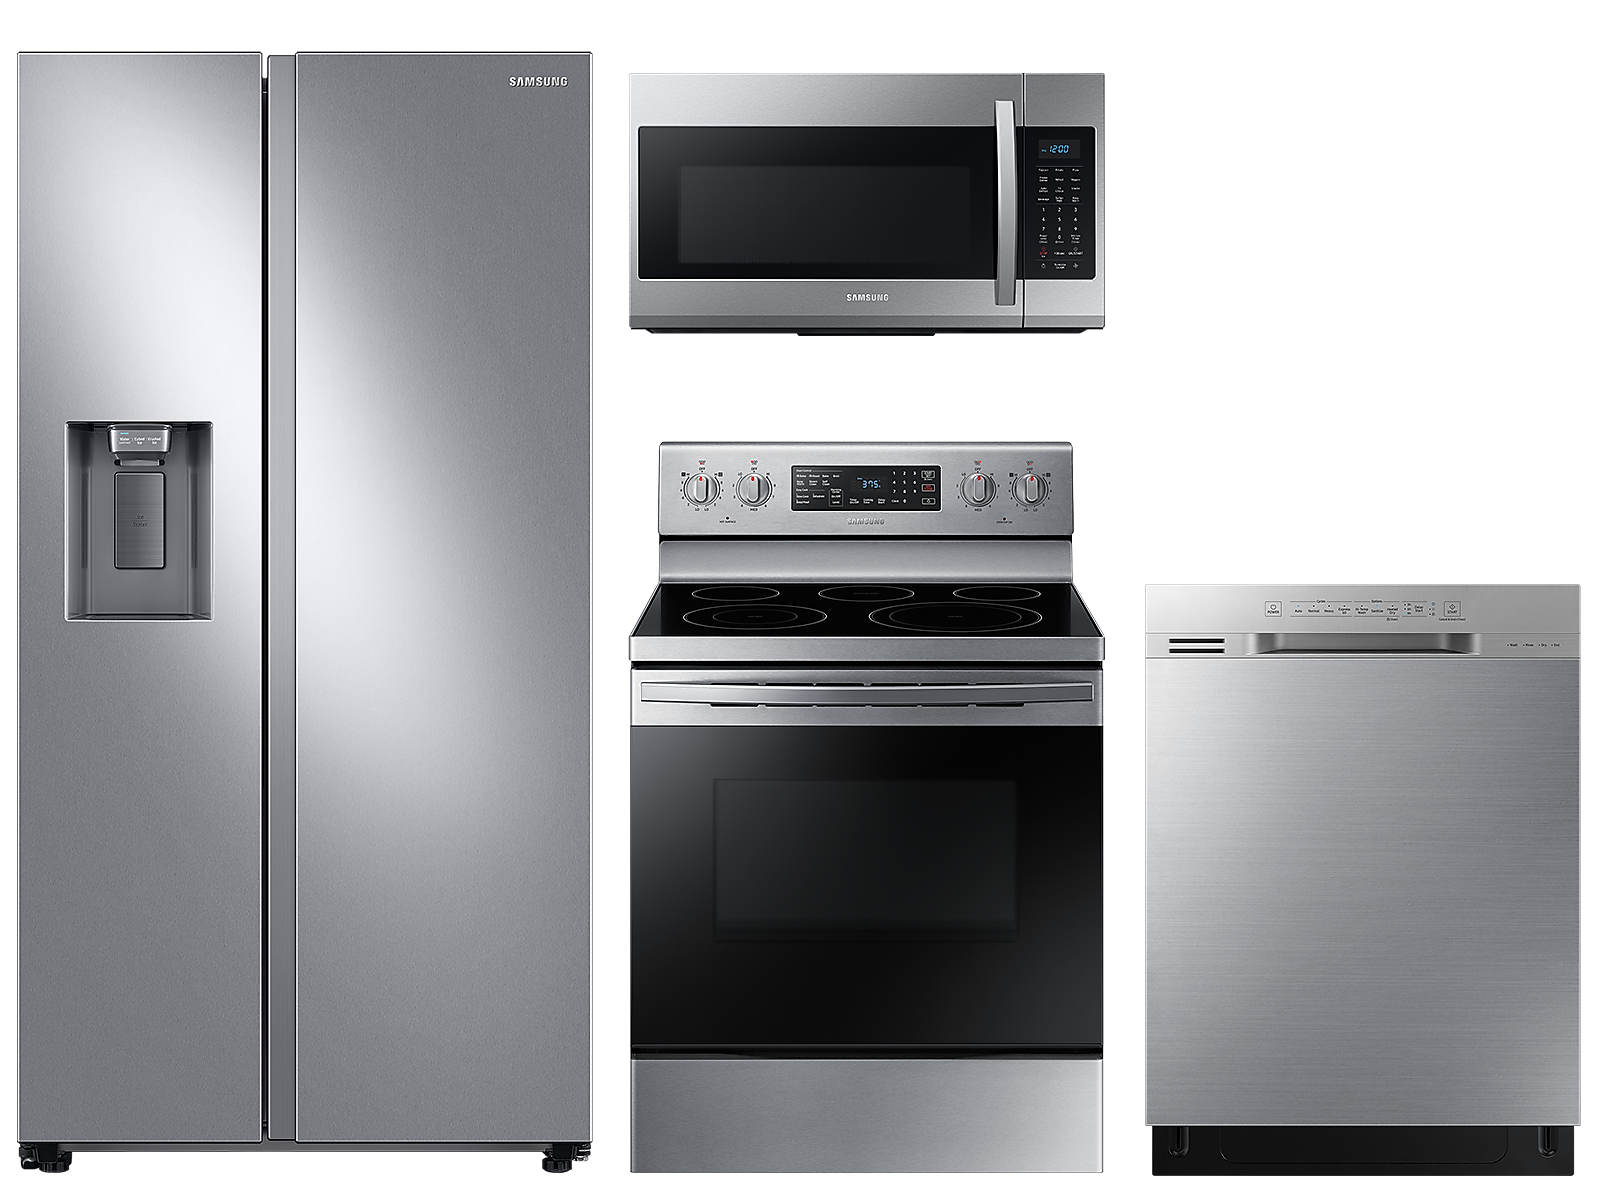 Samsung coupon: Samsung Counter depth Side-by-Side refrigerator & electric range package in Stainless Steel(BNDL-1590169298331)